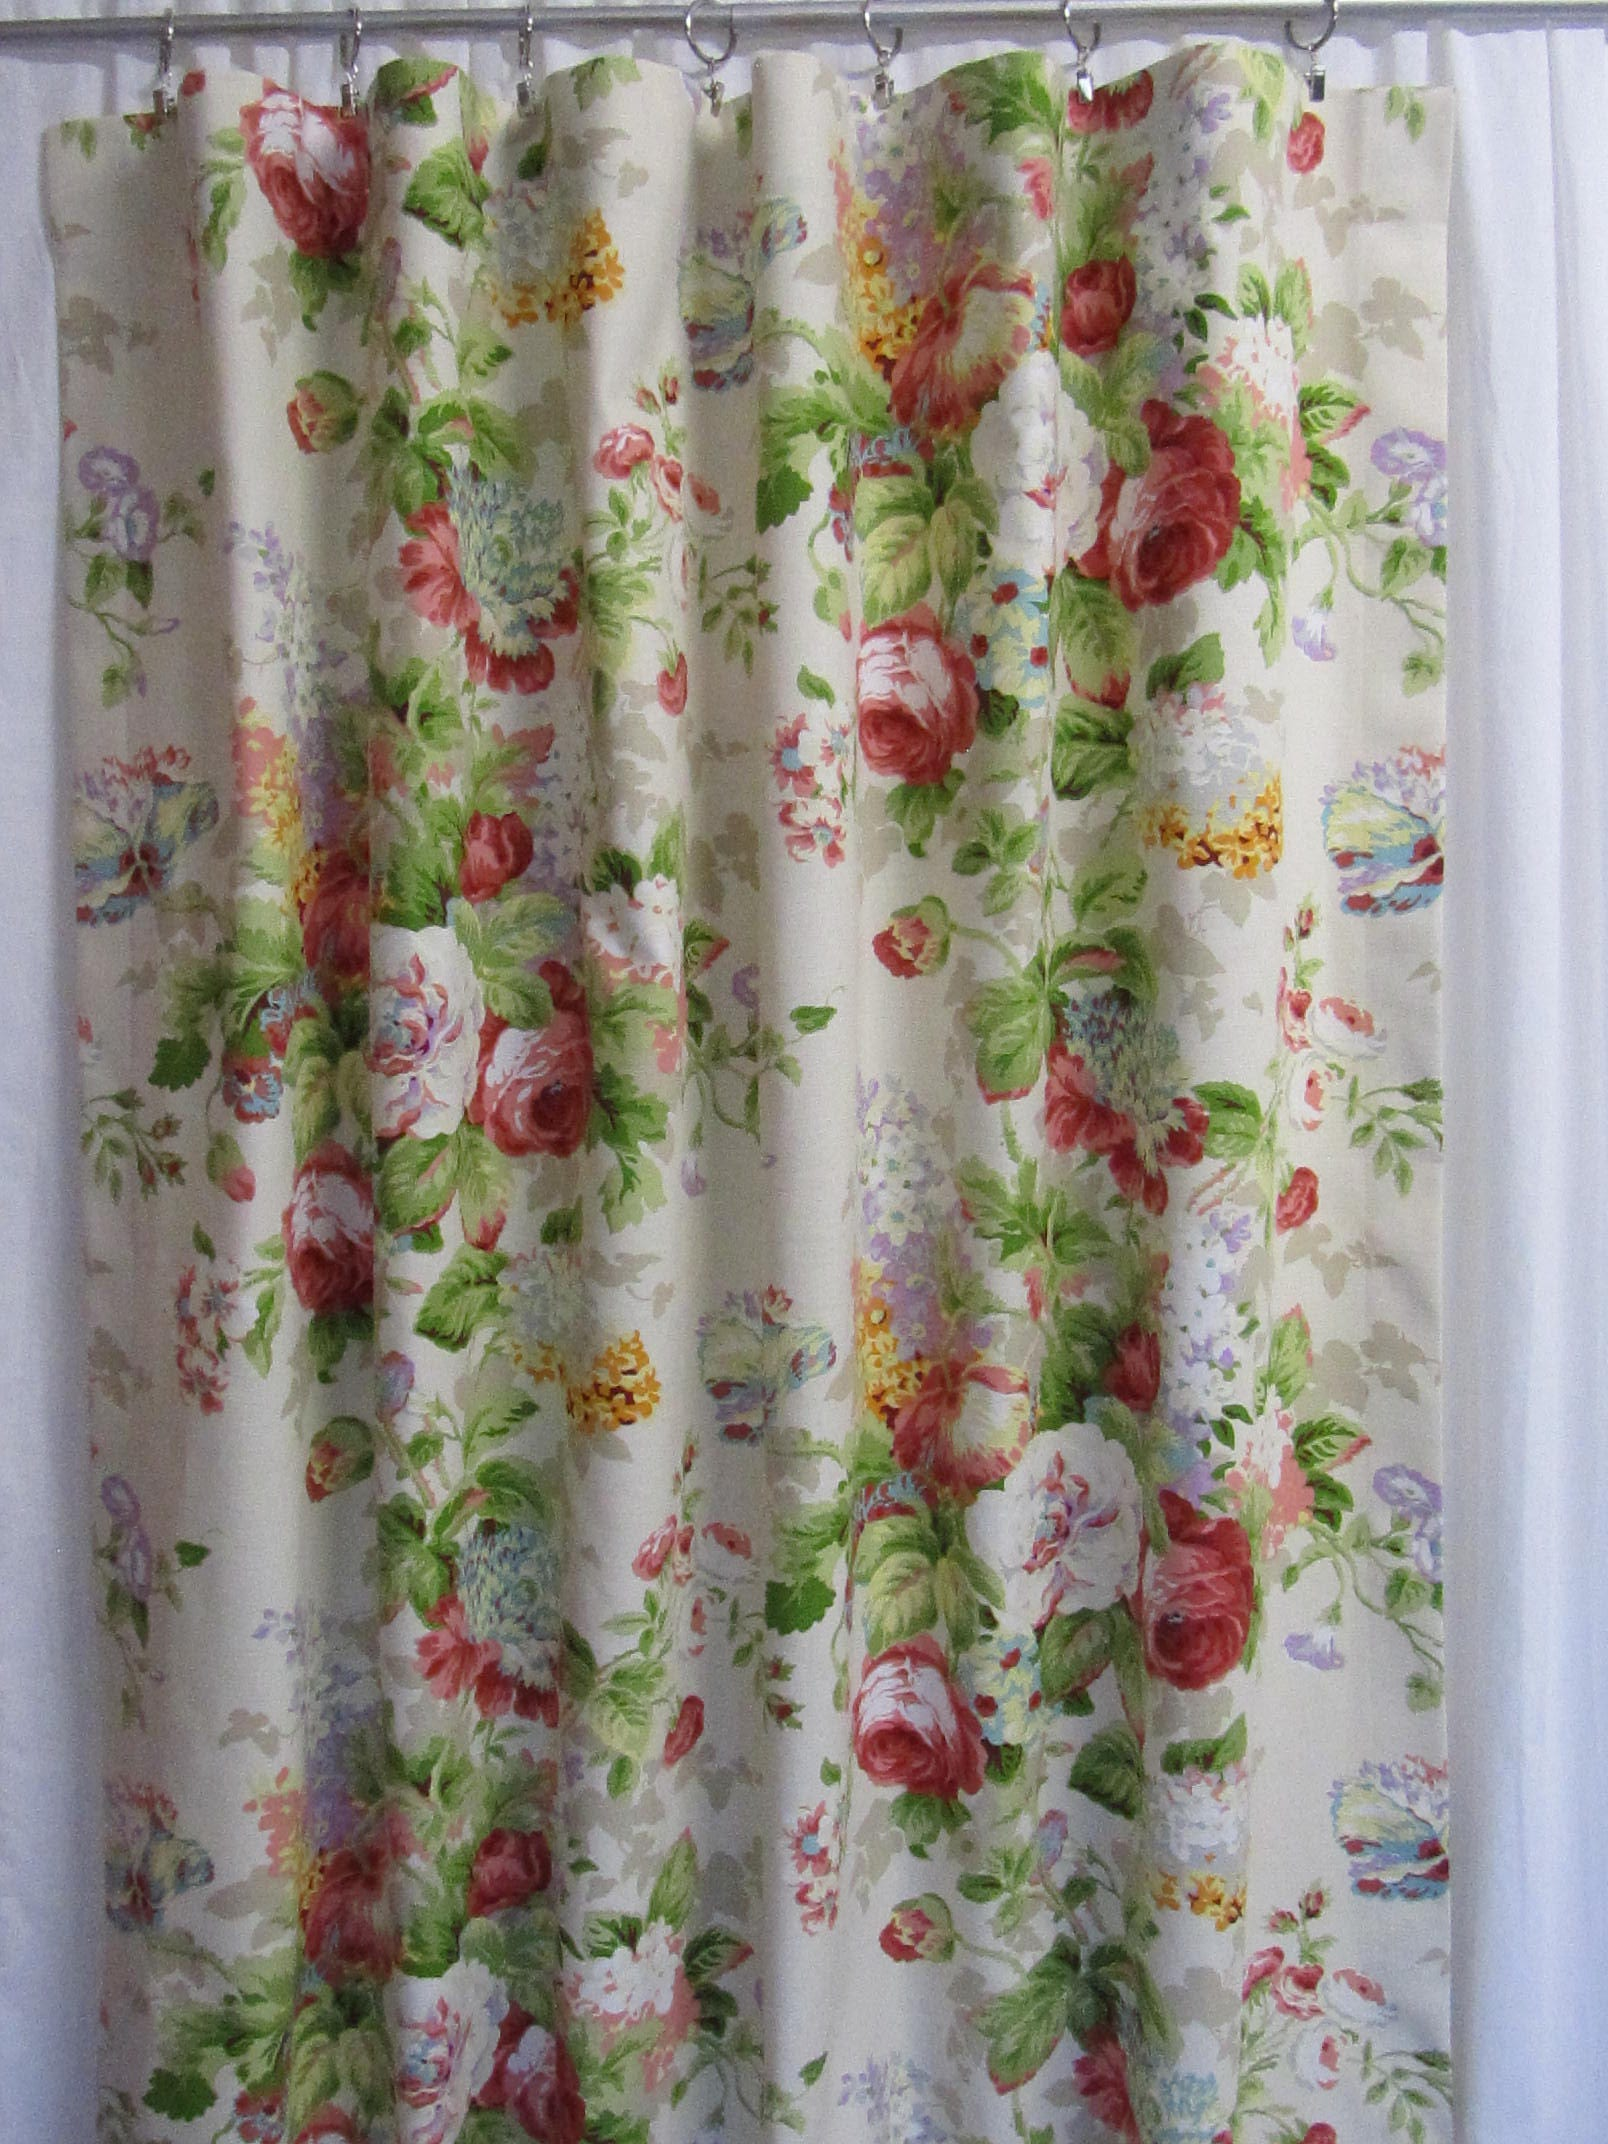 Shabby chic curtain poles images beautiful shabby - Shabby chic curtain poles ...